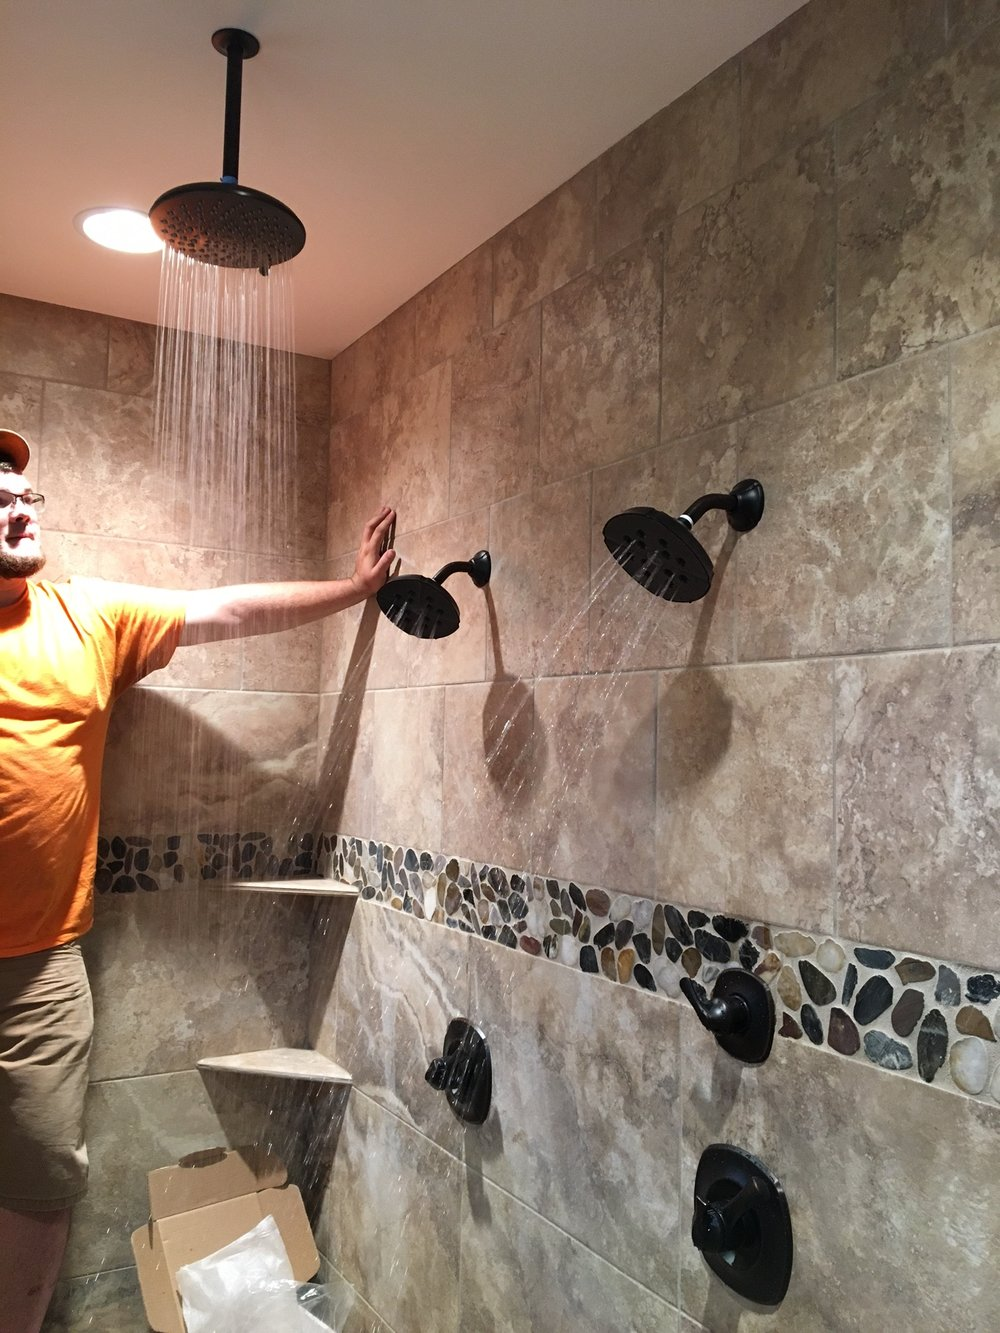 Overhead Shower - Residential